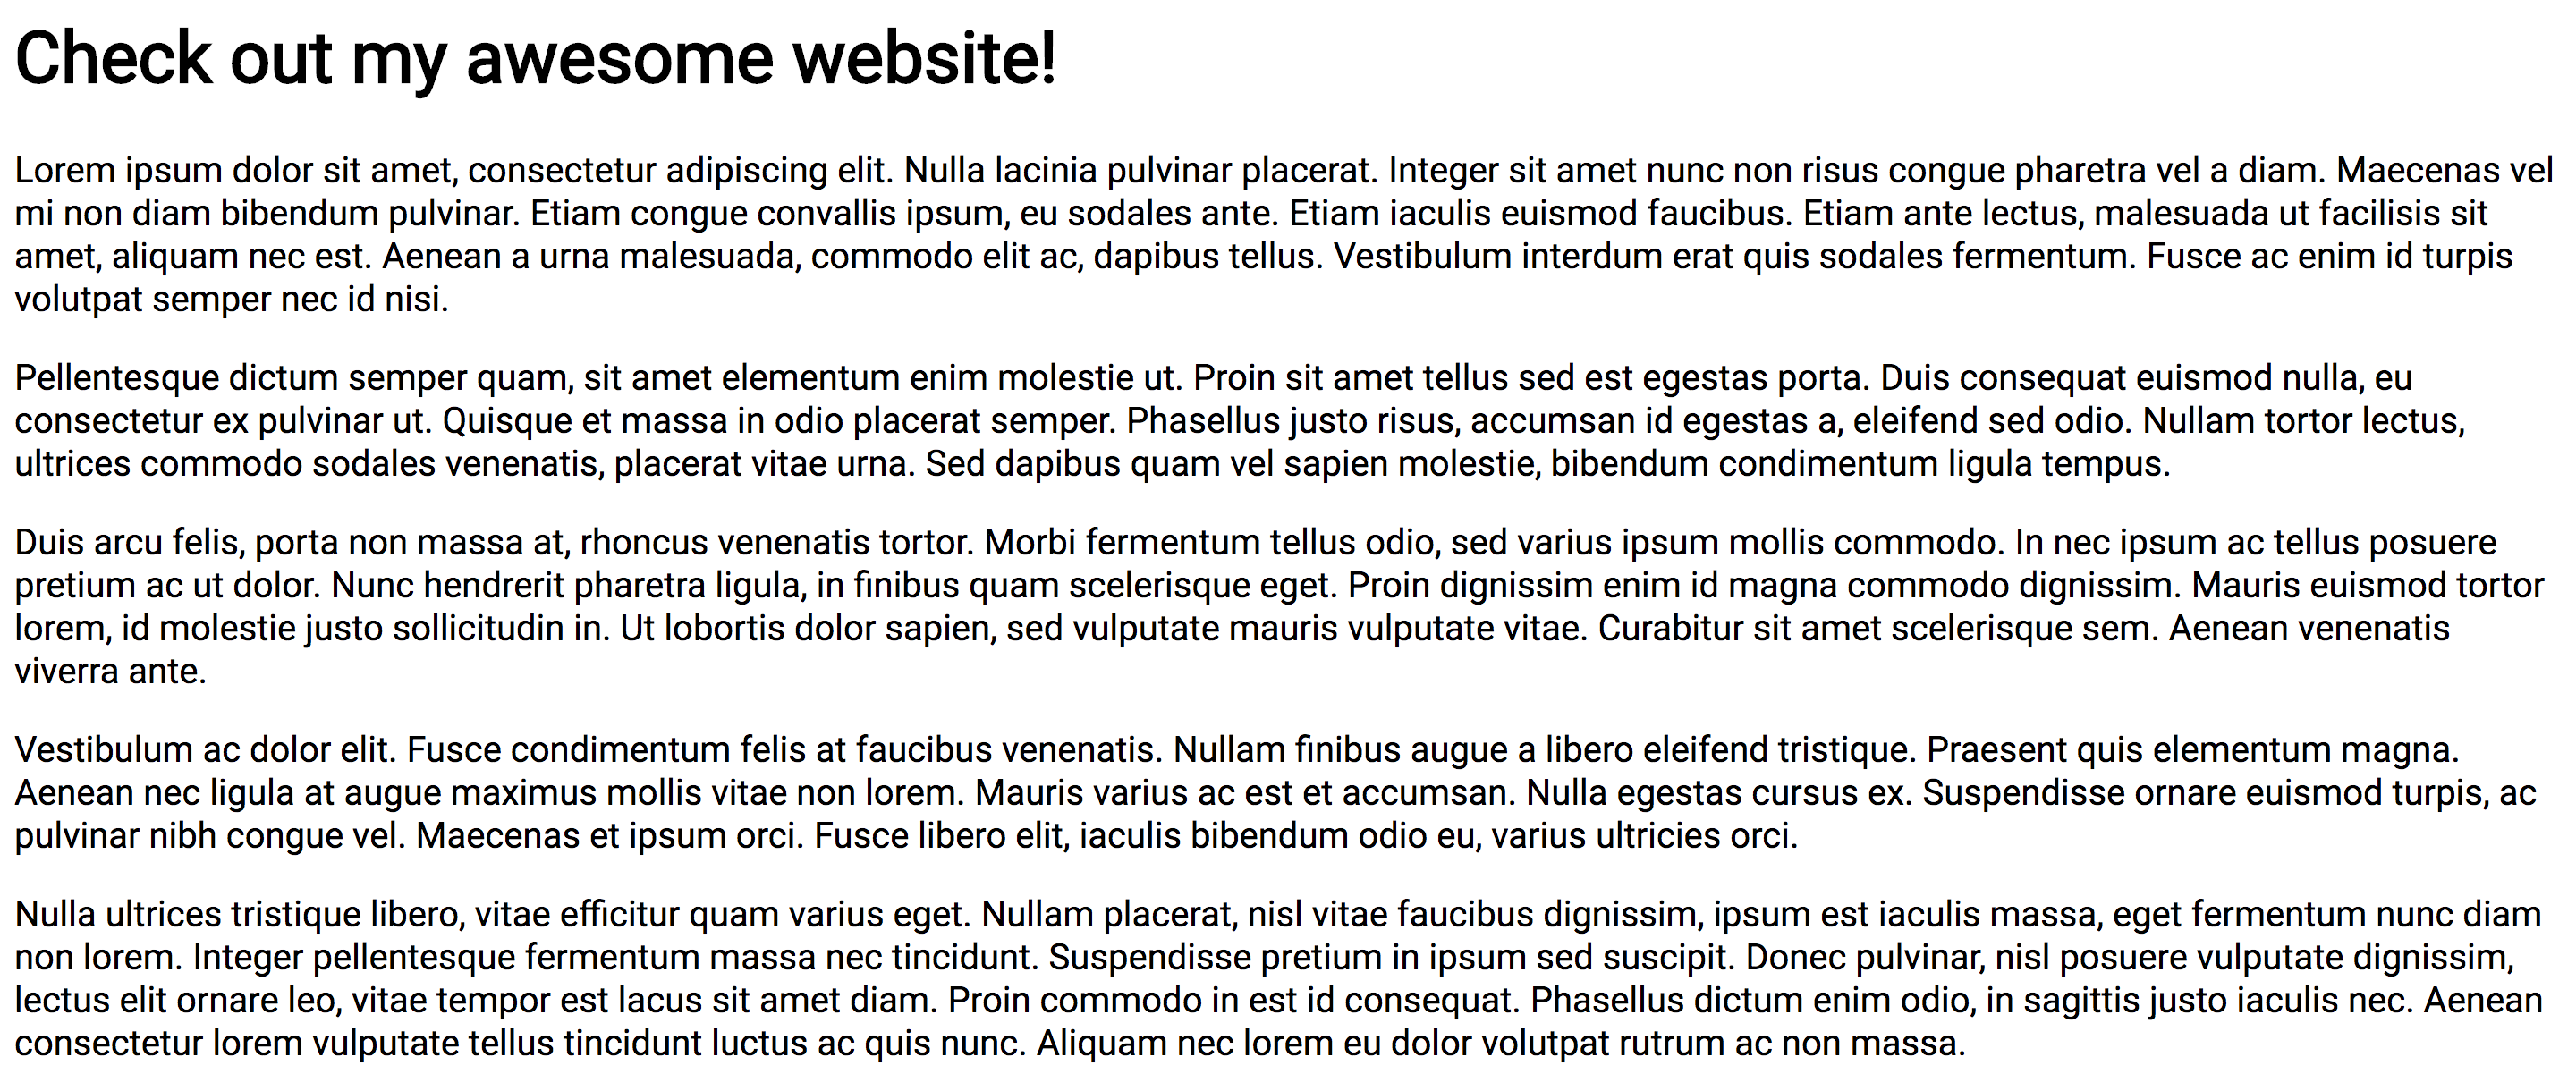 The example website using Roboto Font (designed by Google and linked from [Google Fonts](https://fonts.google.com/?selection.family=Roboto))